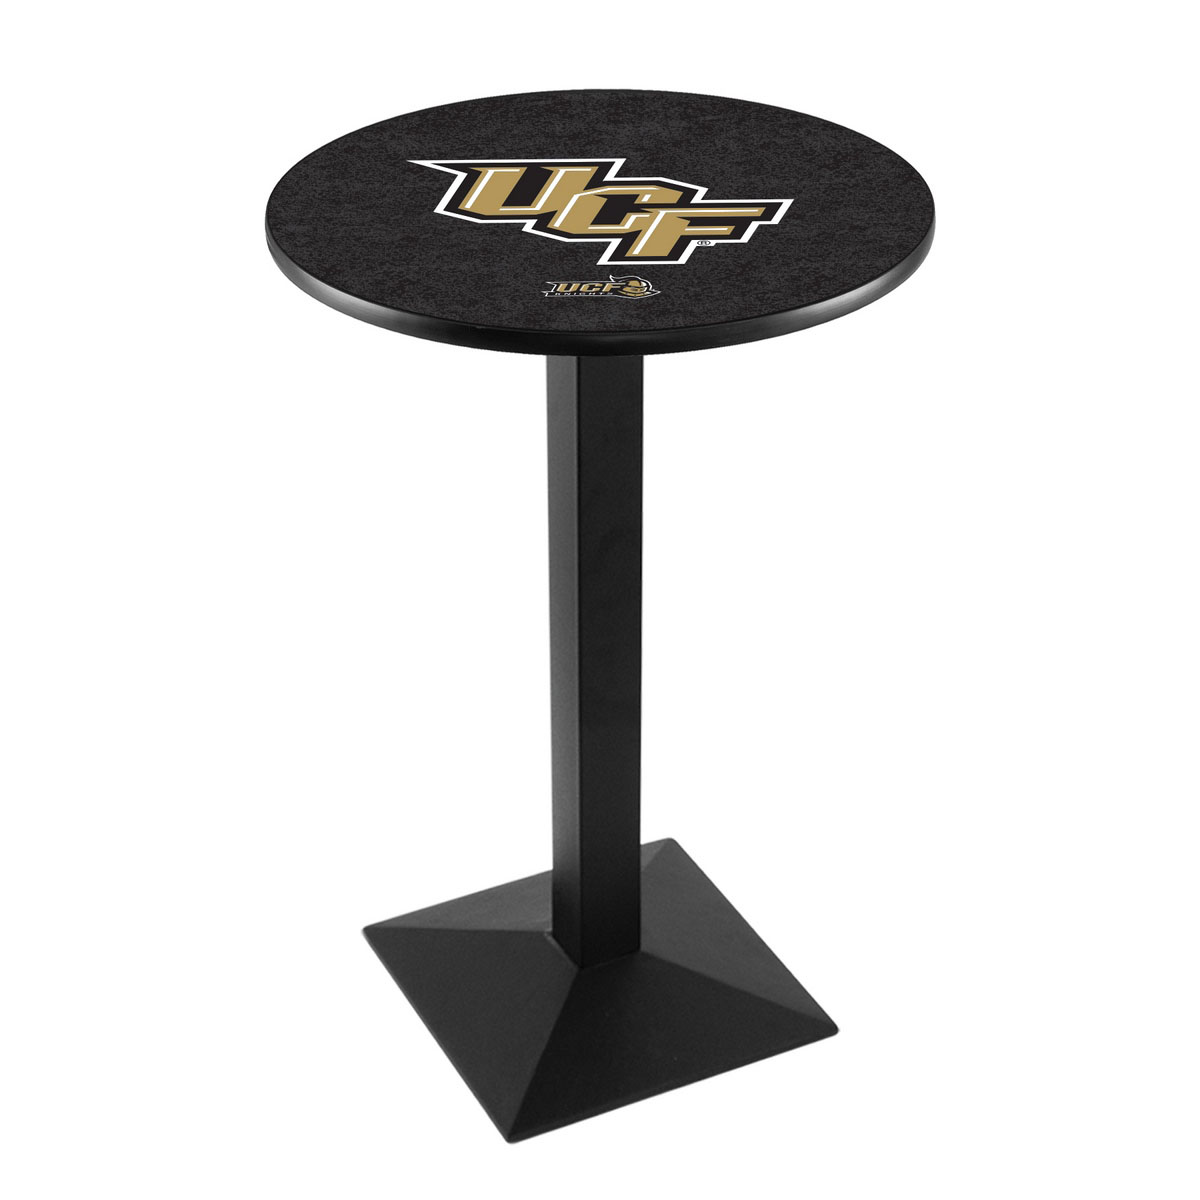 Purchase University Central Florida Logo Pub Bar Table Square Stand Product Photo